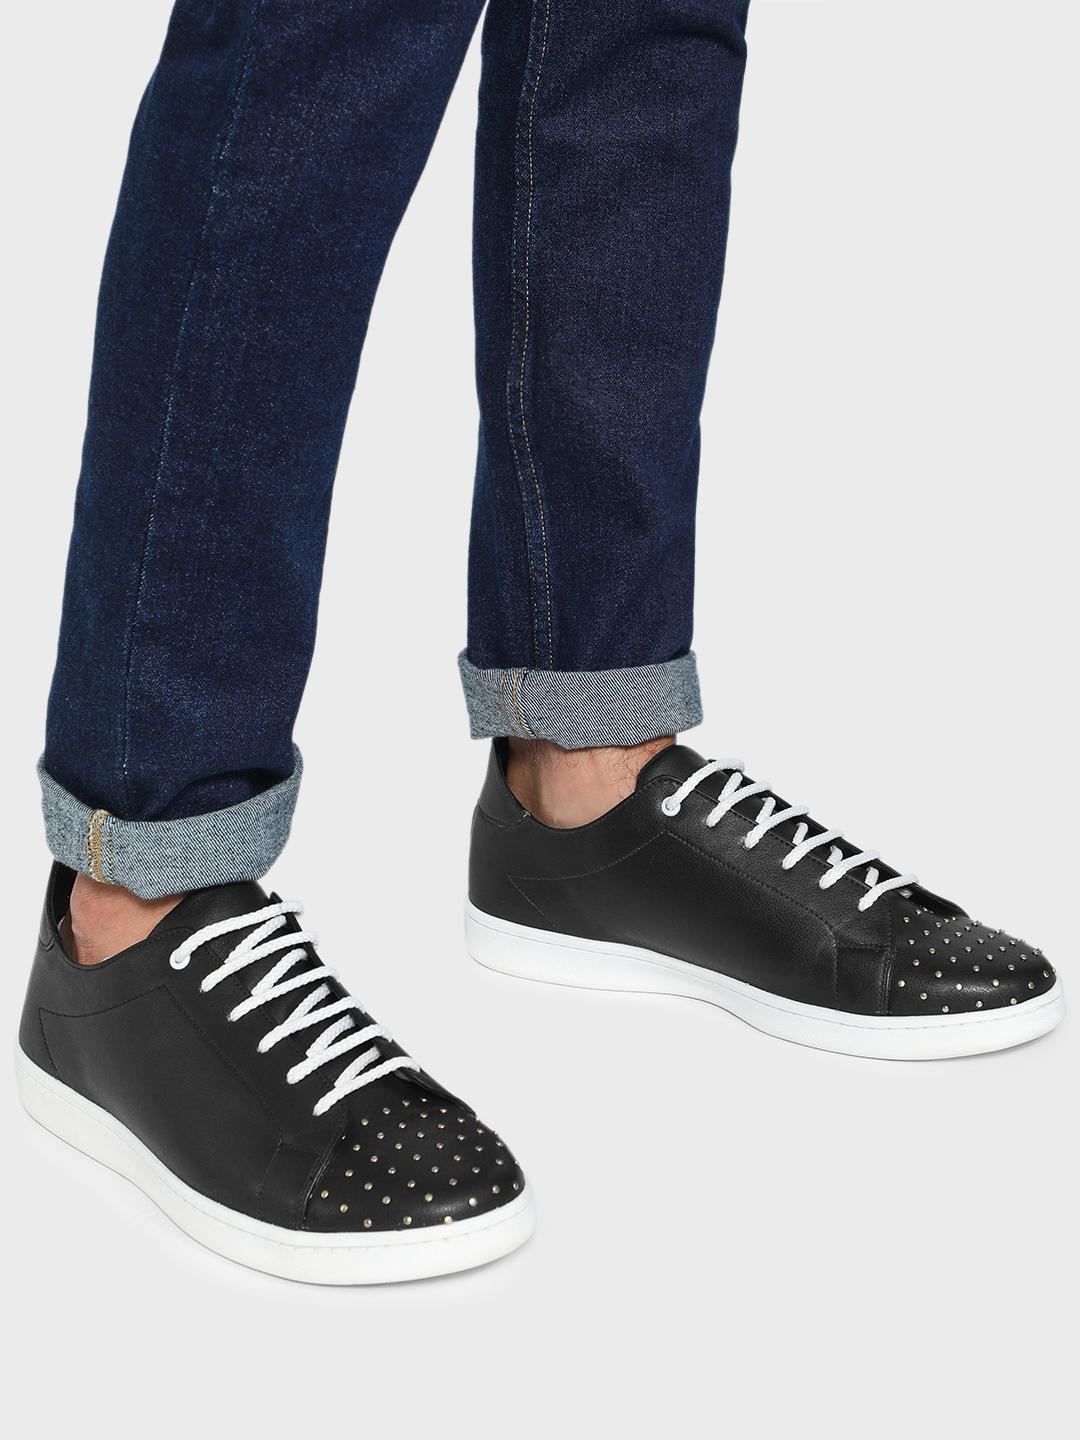 KOOVS Black Studded Toe Lace-Up Sneakers 1